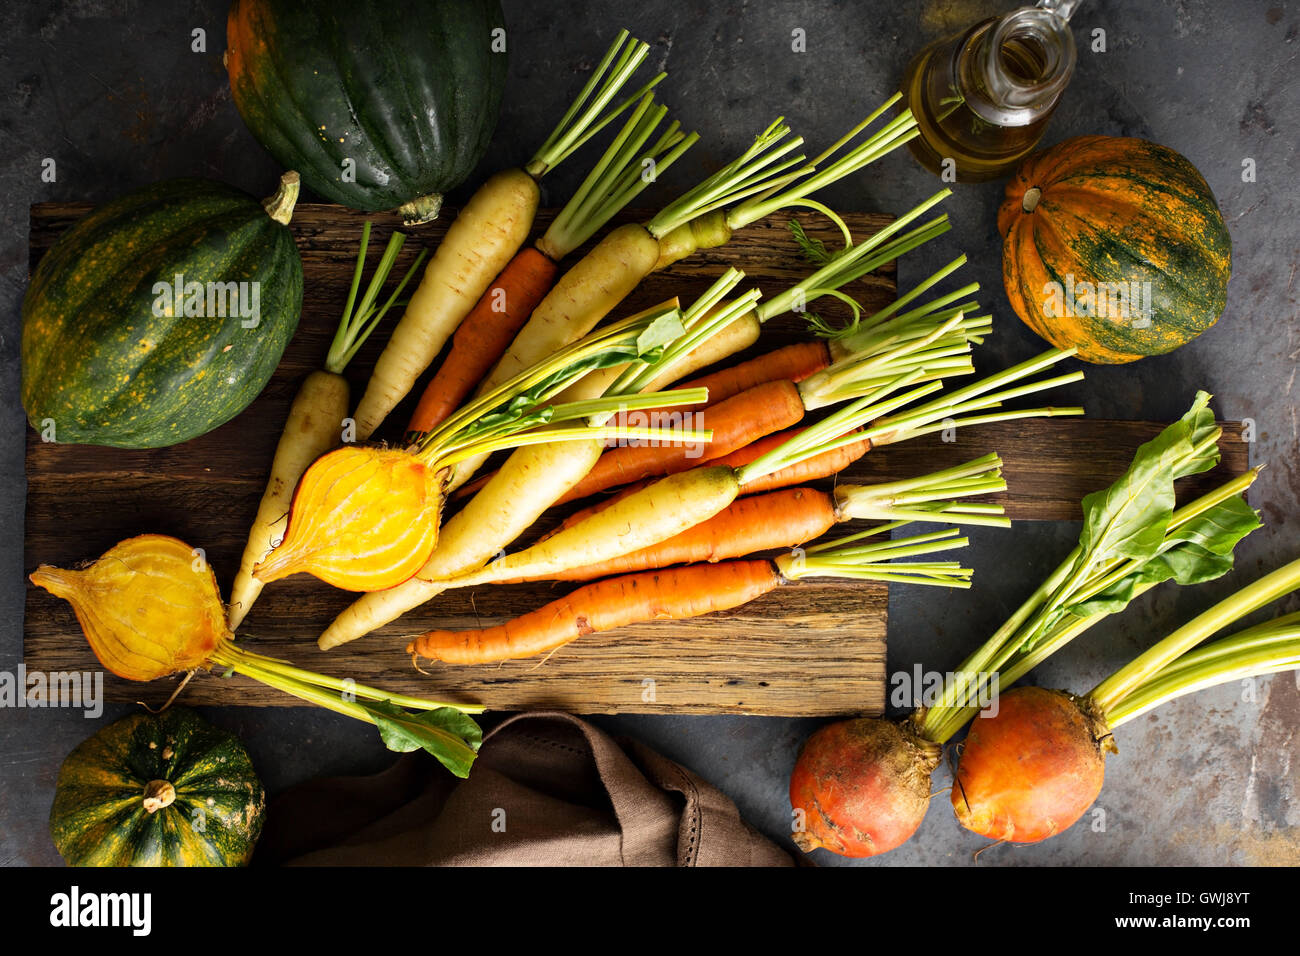 Big pile of autumn produce ready to be cooked - Stock Image